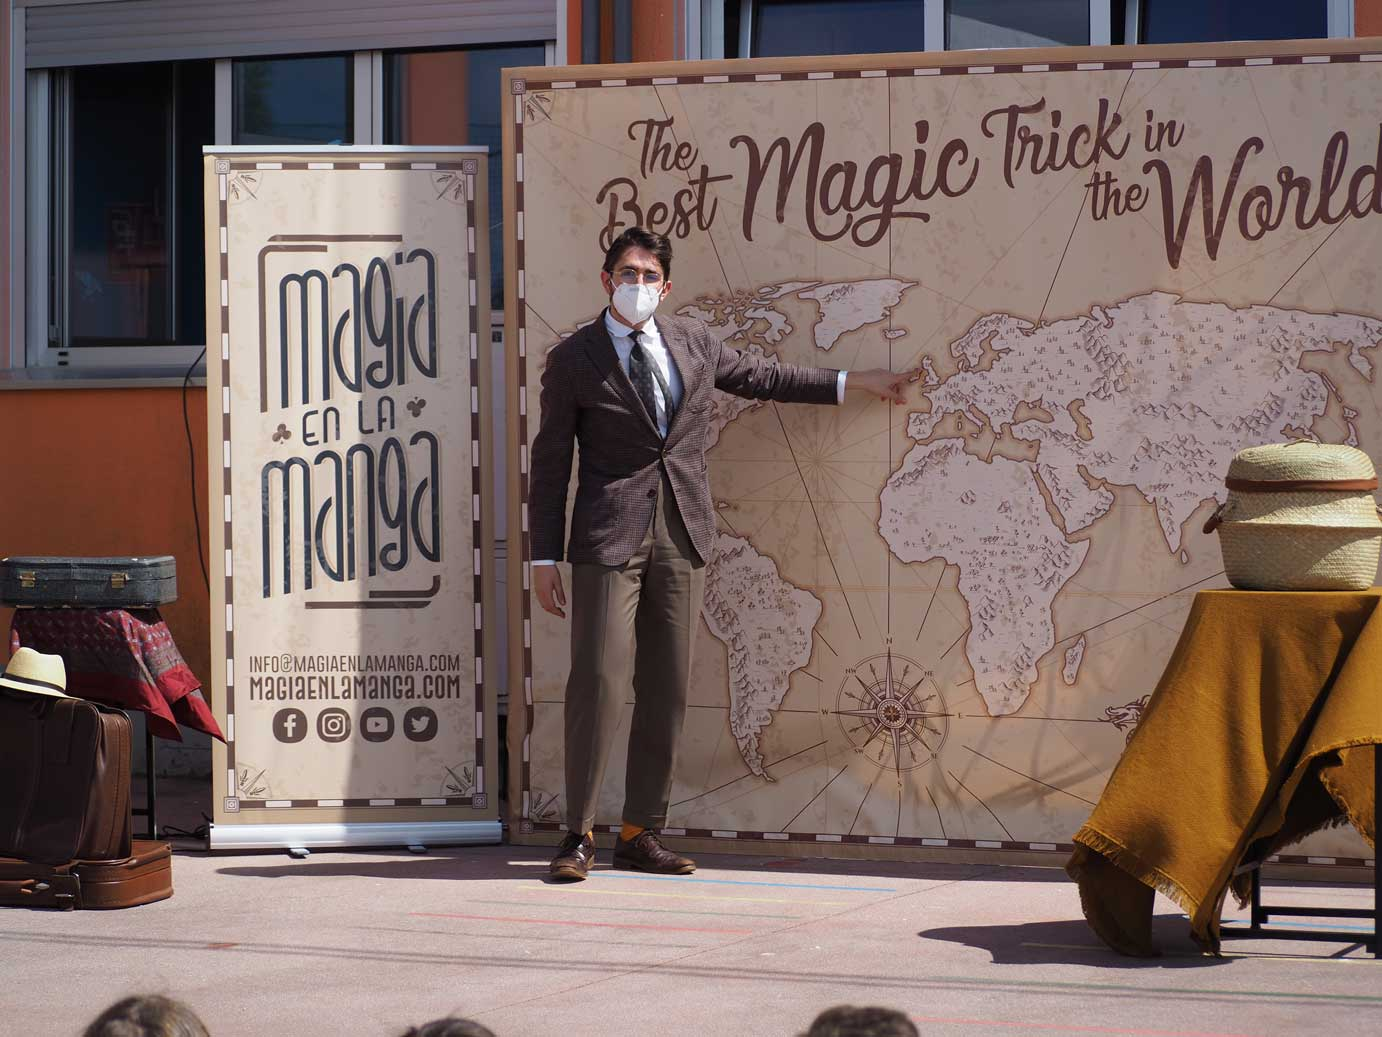 the-best-magic-trick-in-the-world-09